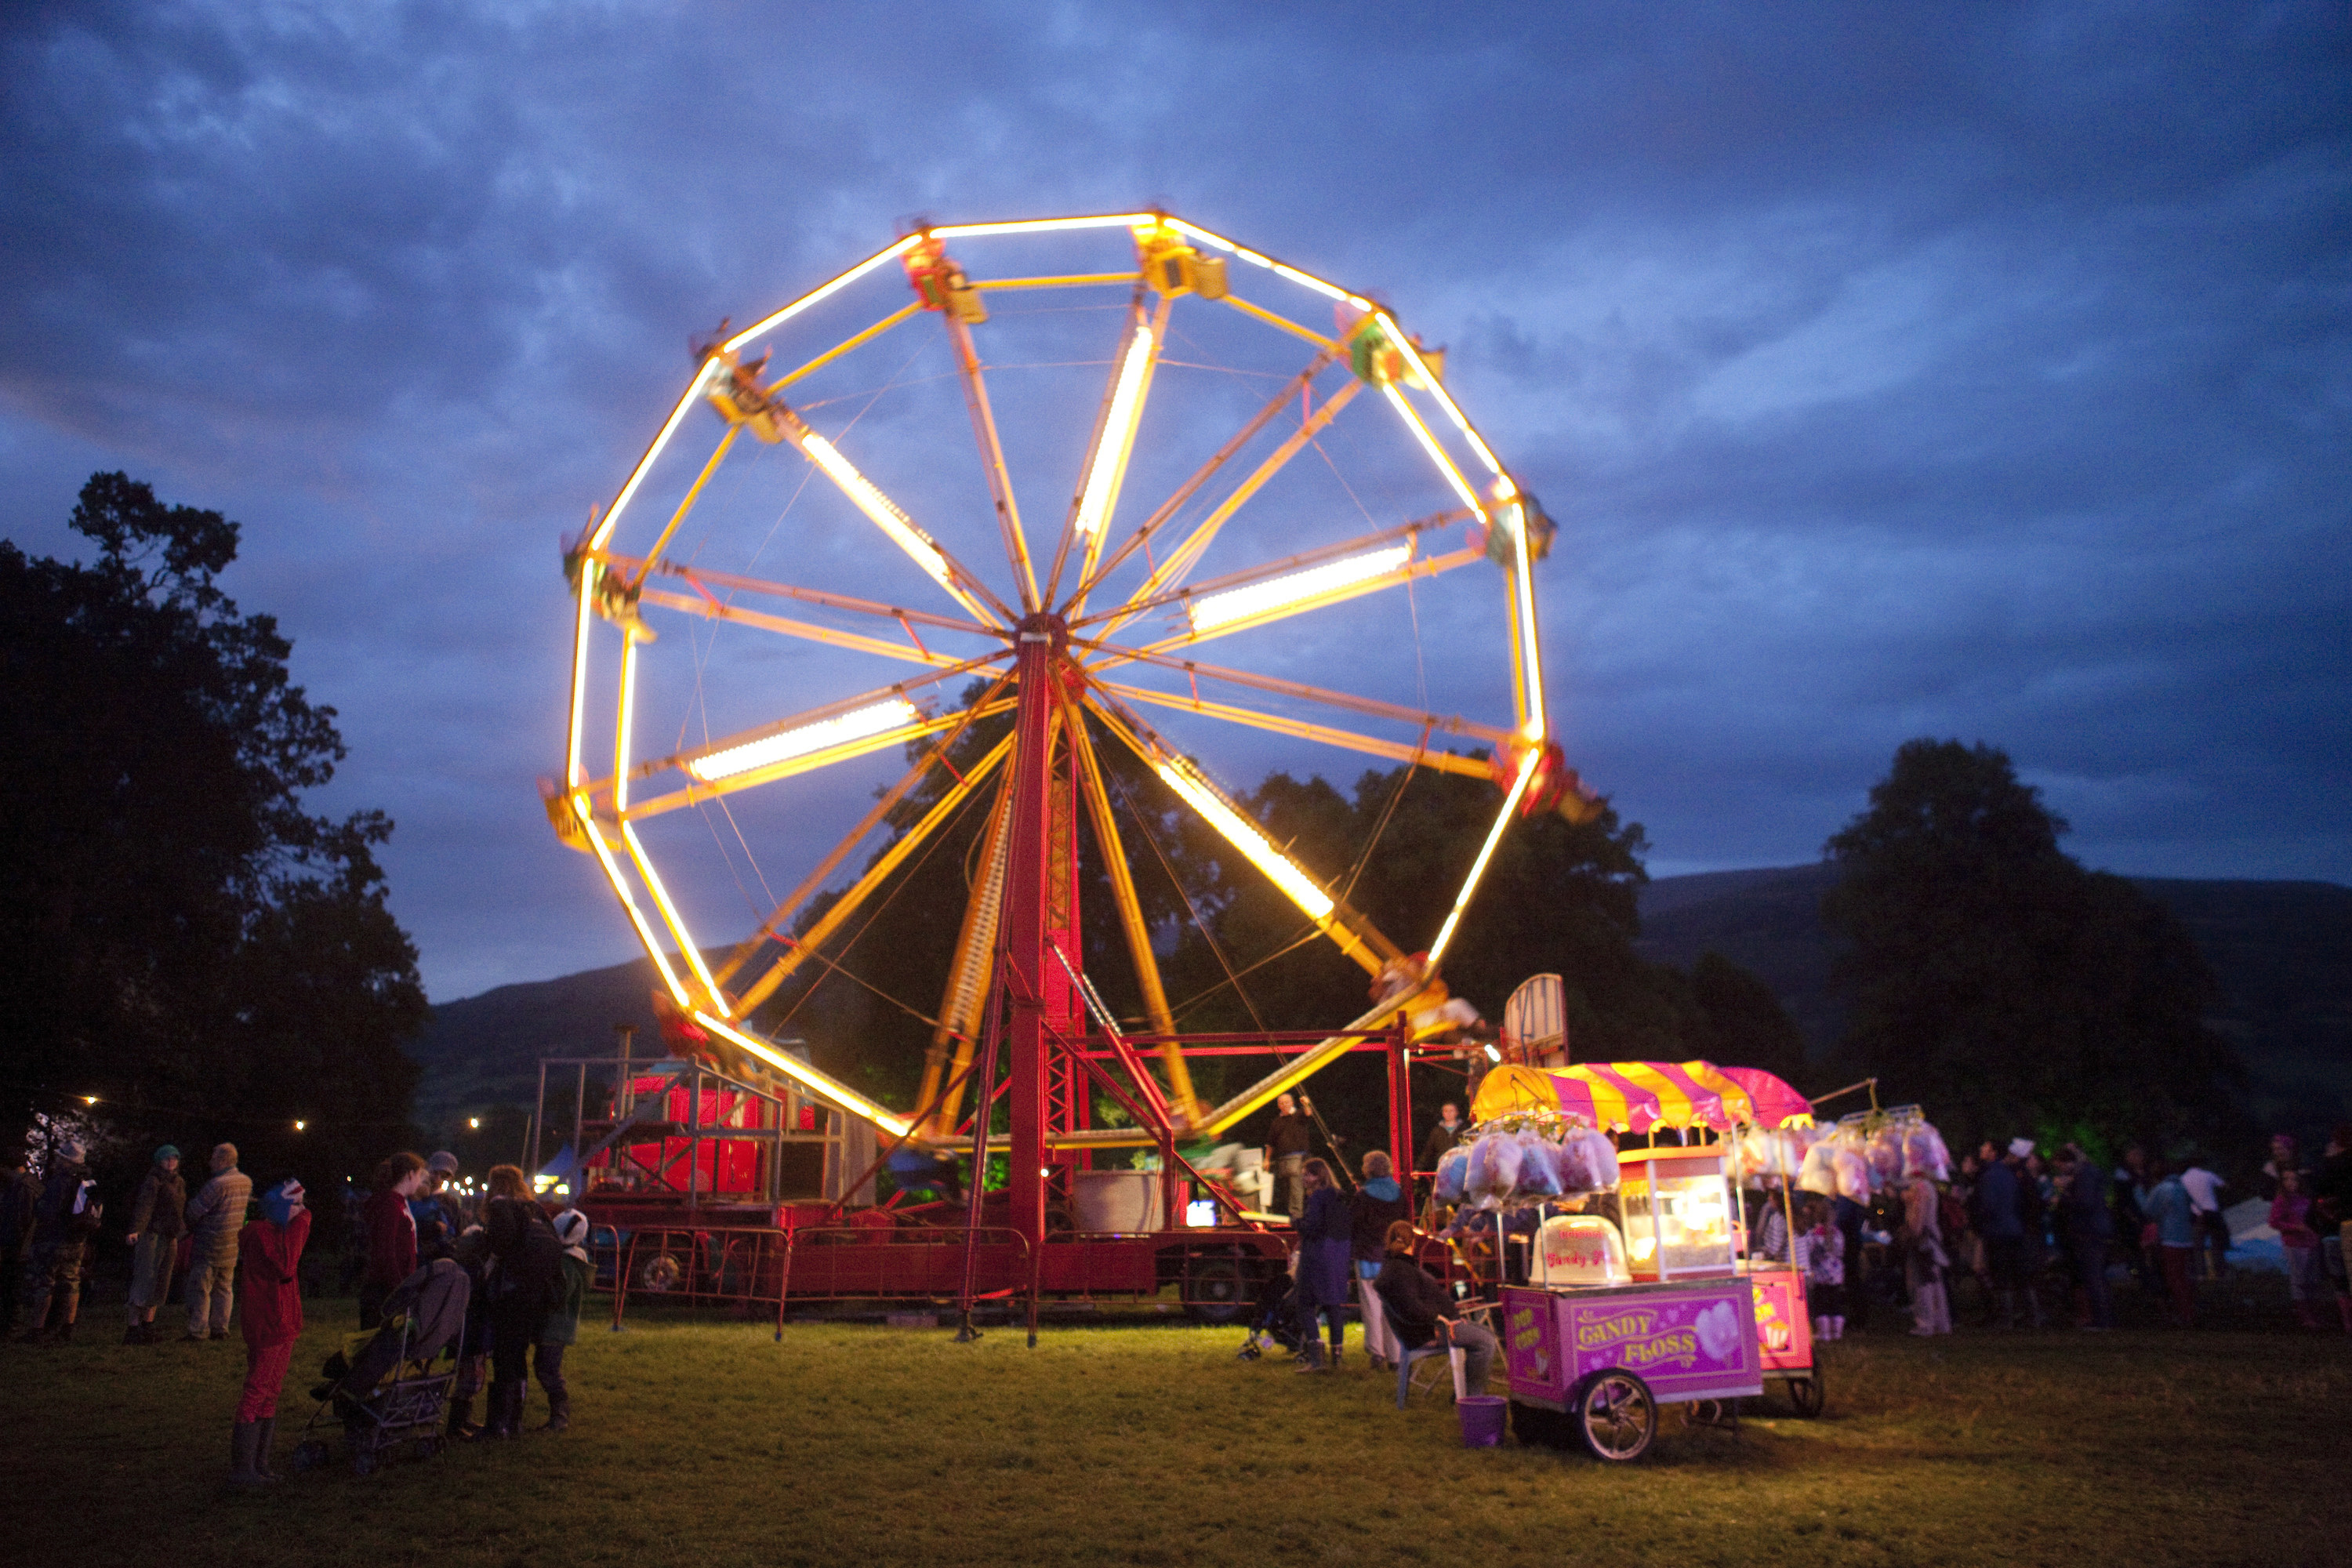 A ferris wheel and cotton candy stand light up the evening sky at the Green Man Festival